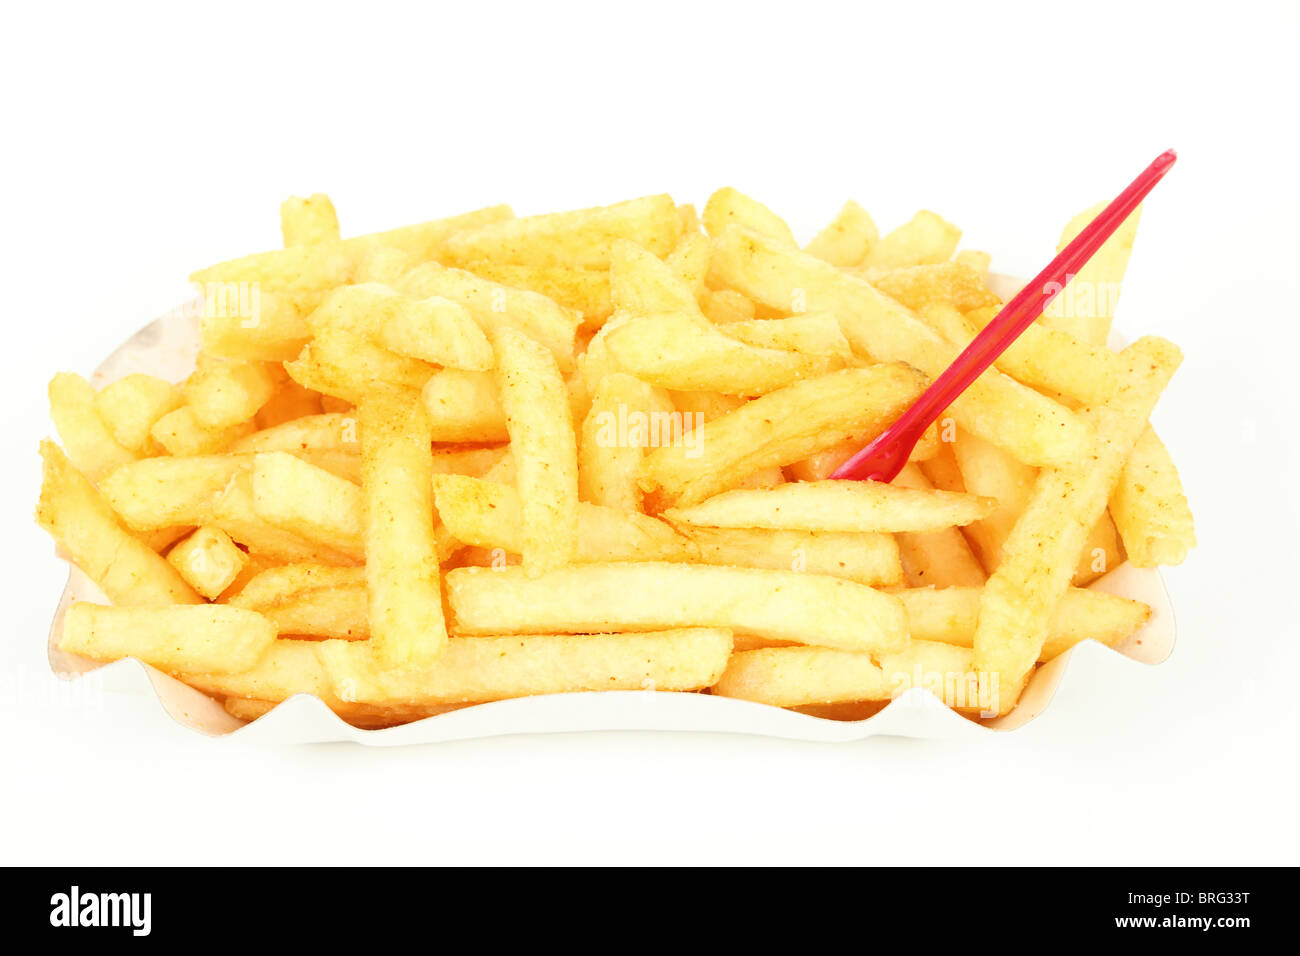 French fries isolated over white background - Stock Image